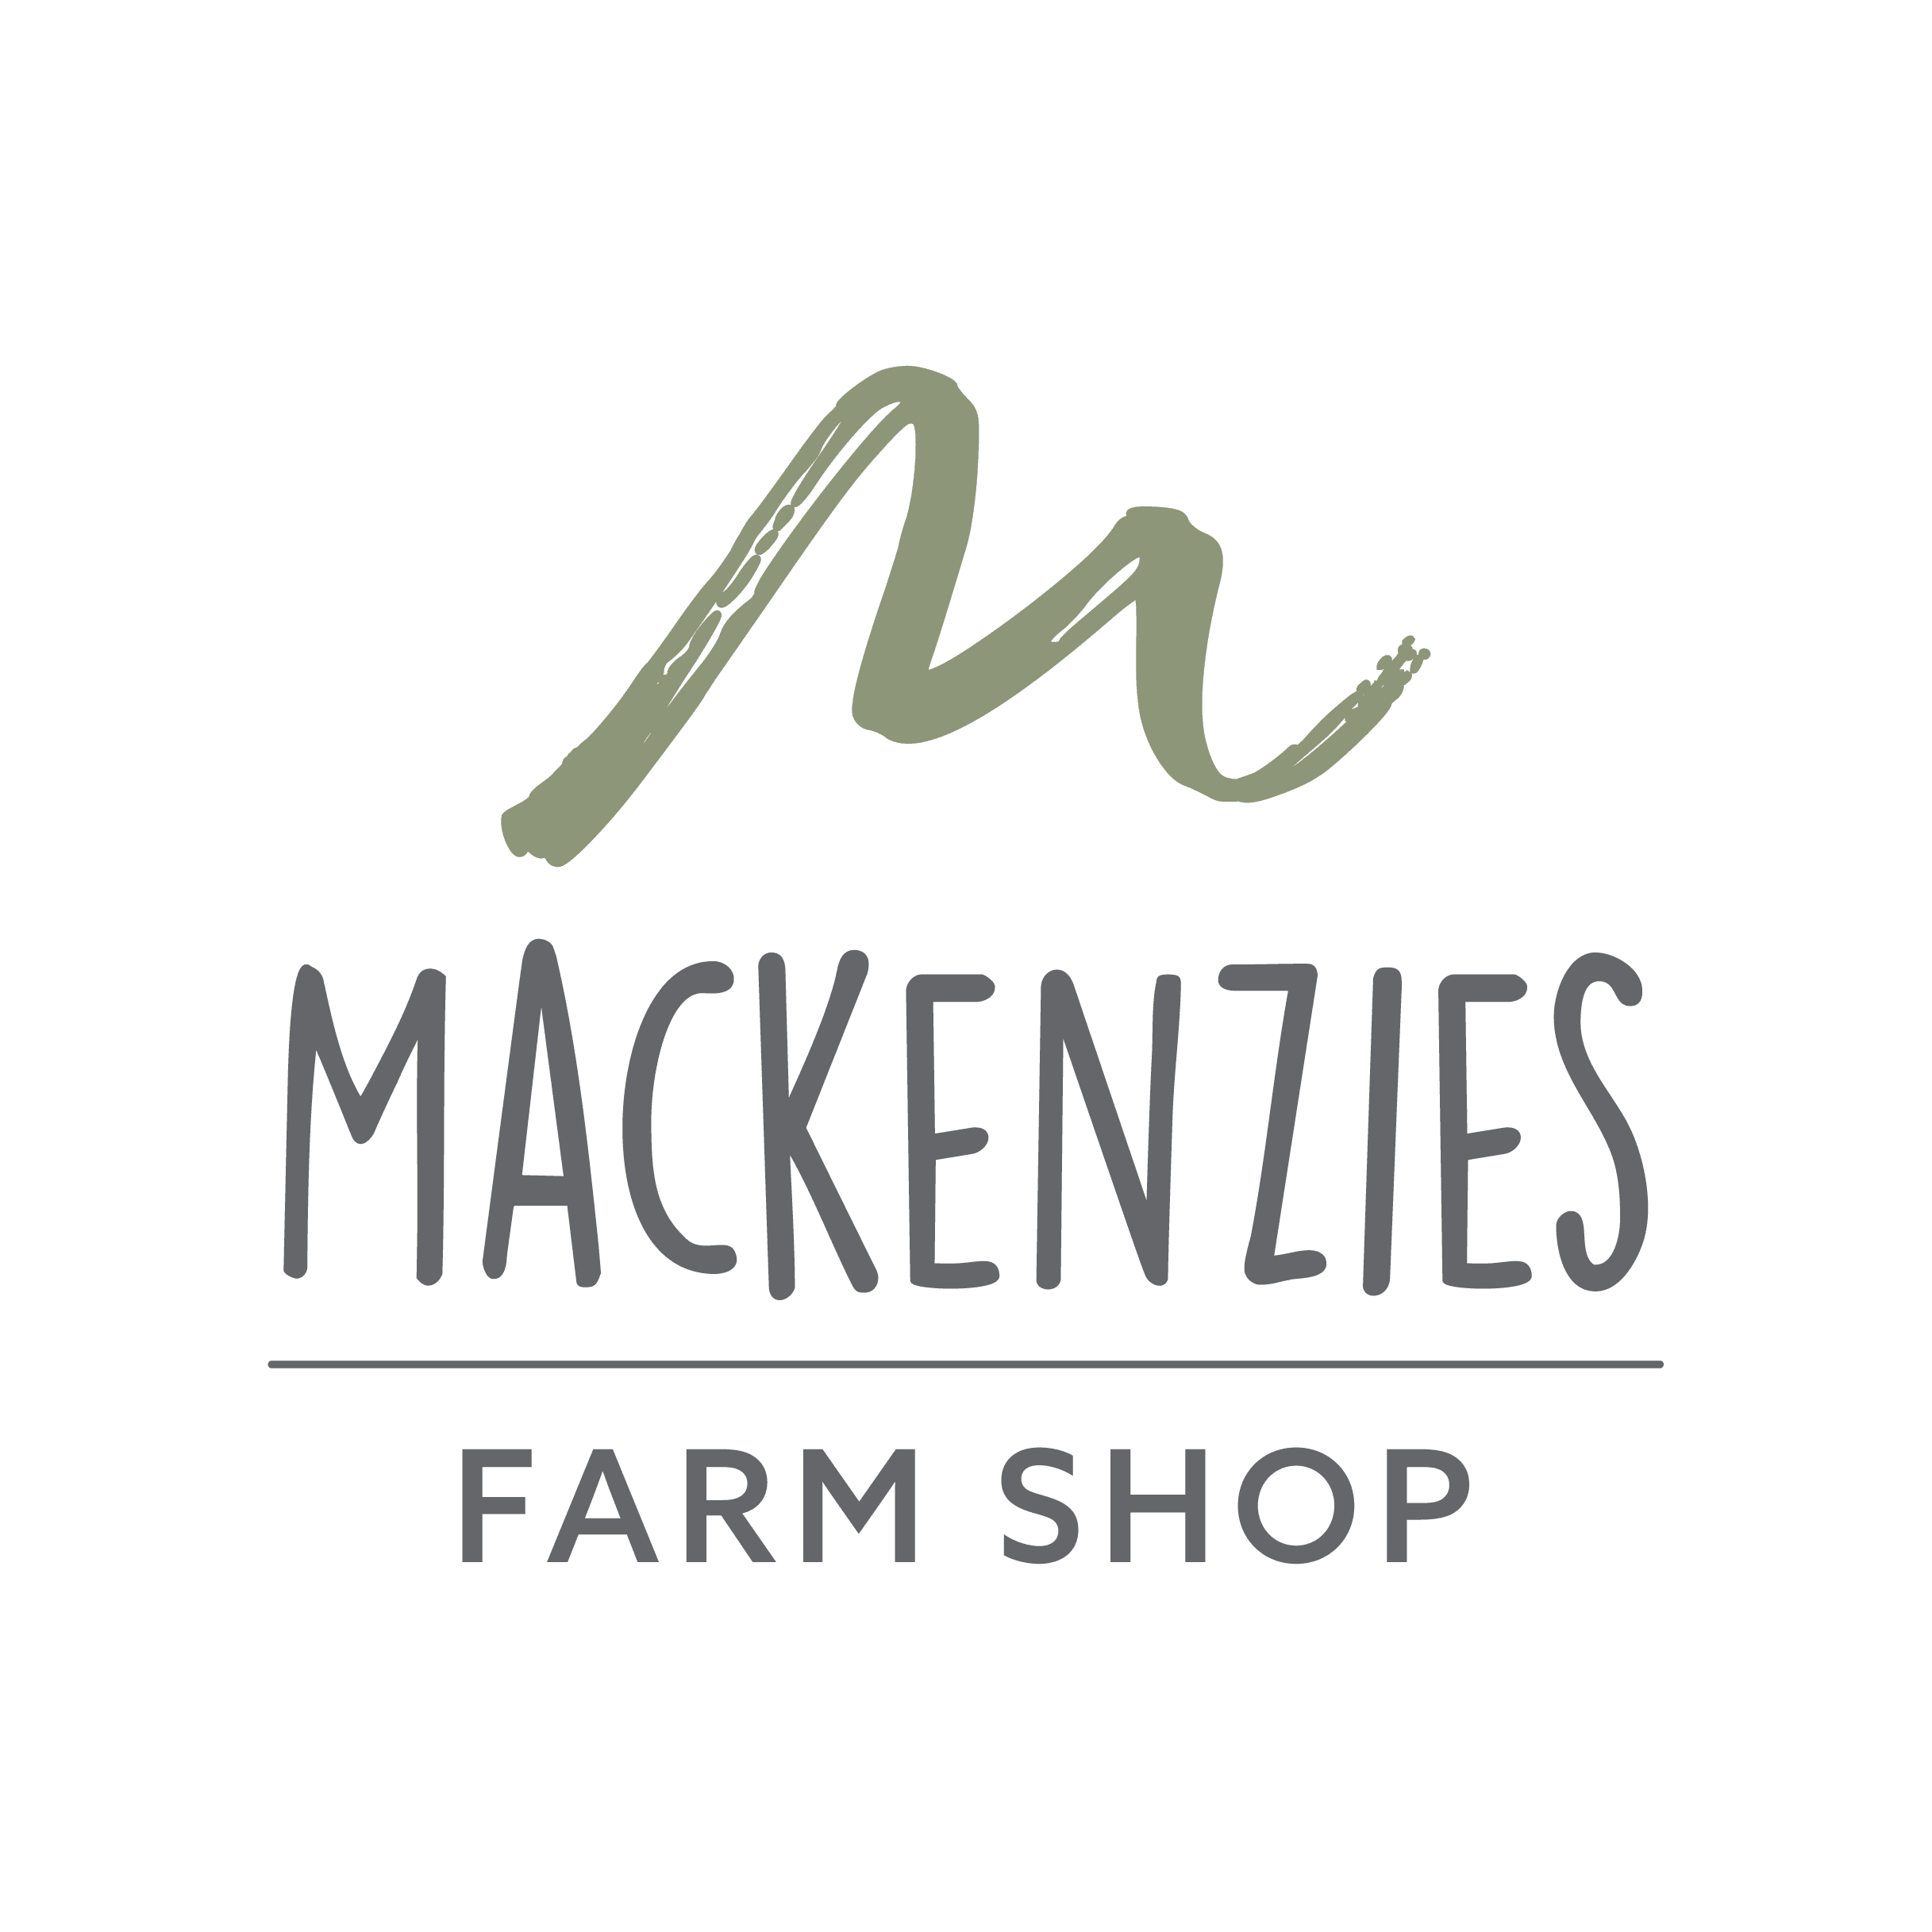 Mackenzies Farm Shop and Smokehouse